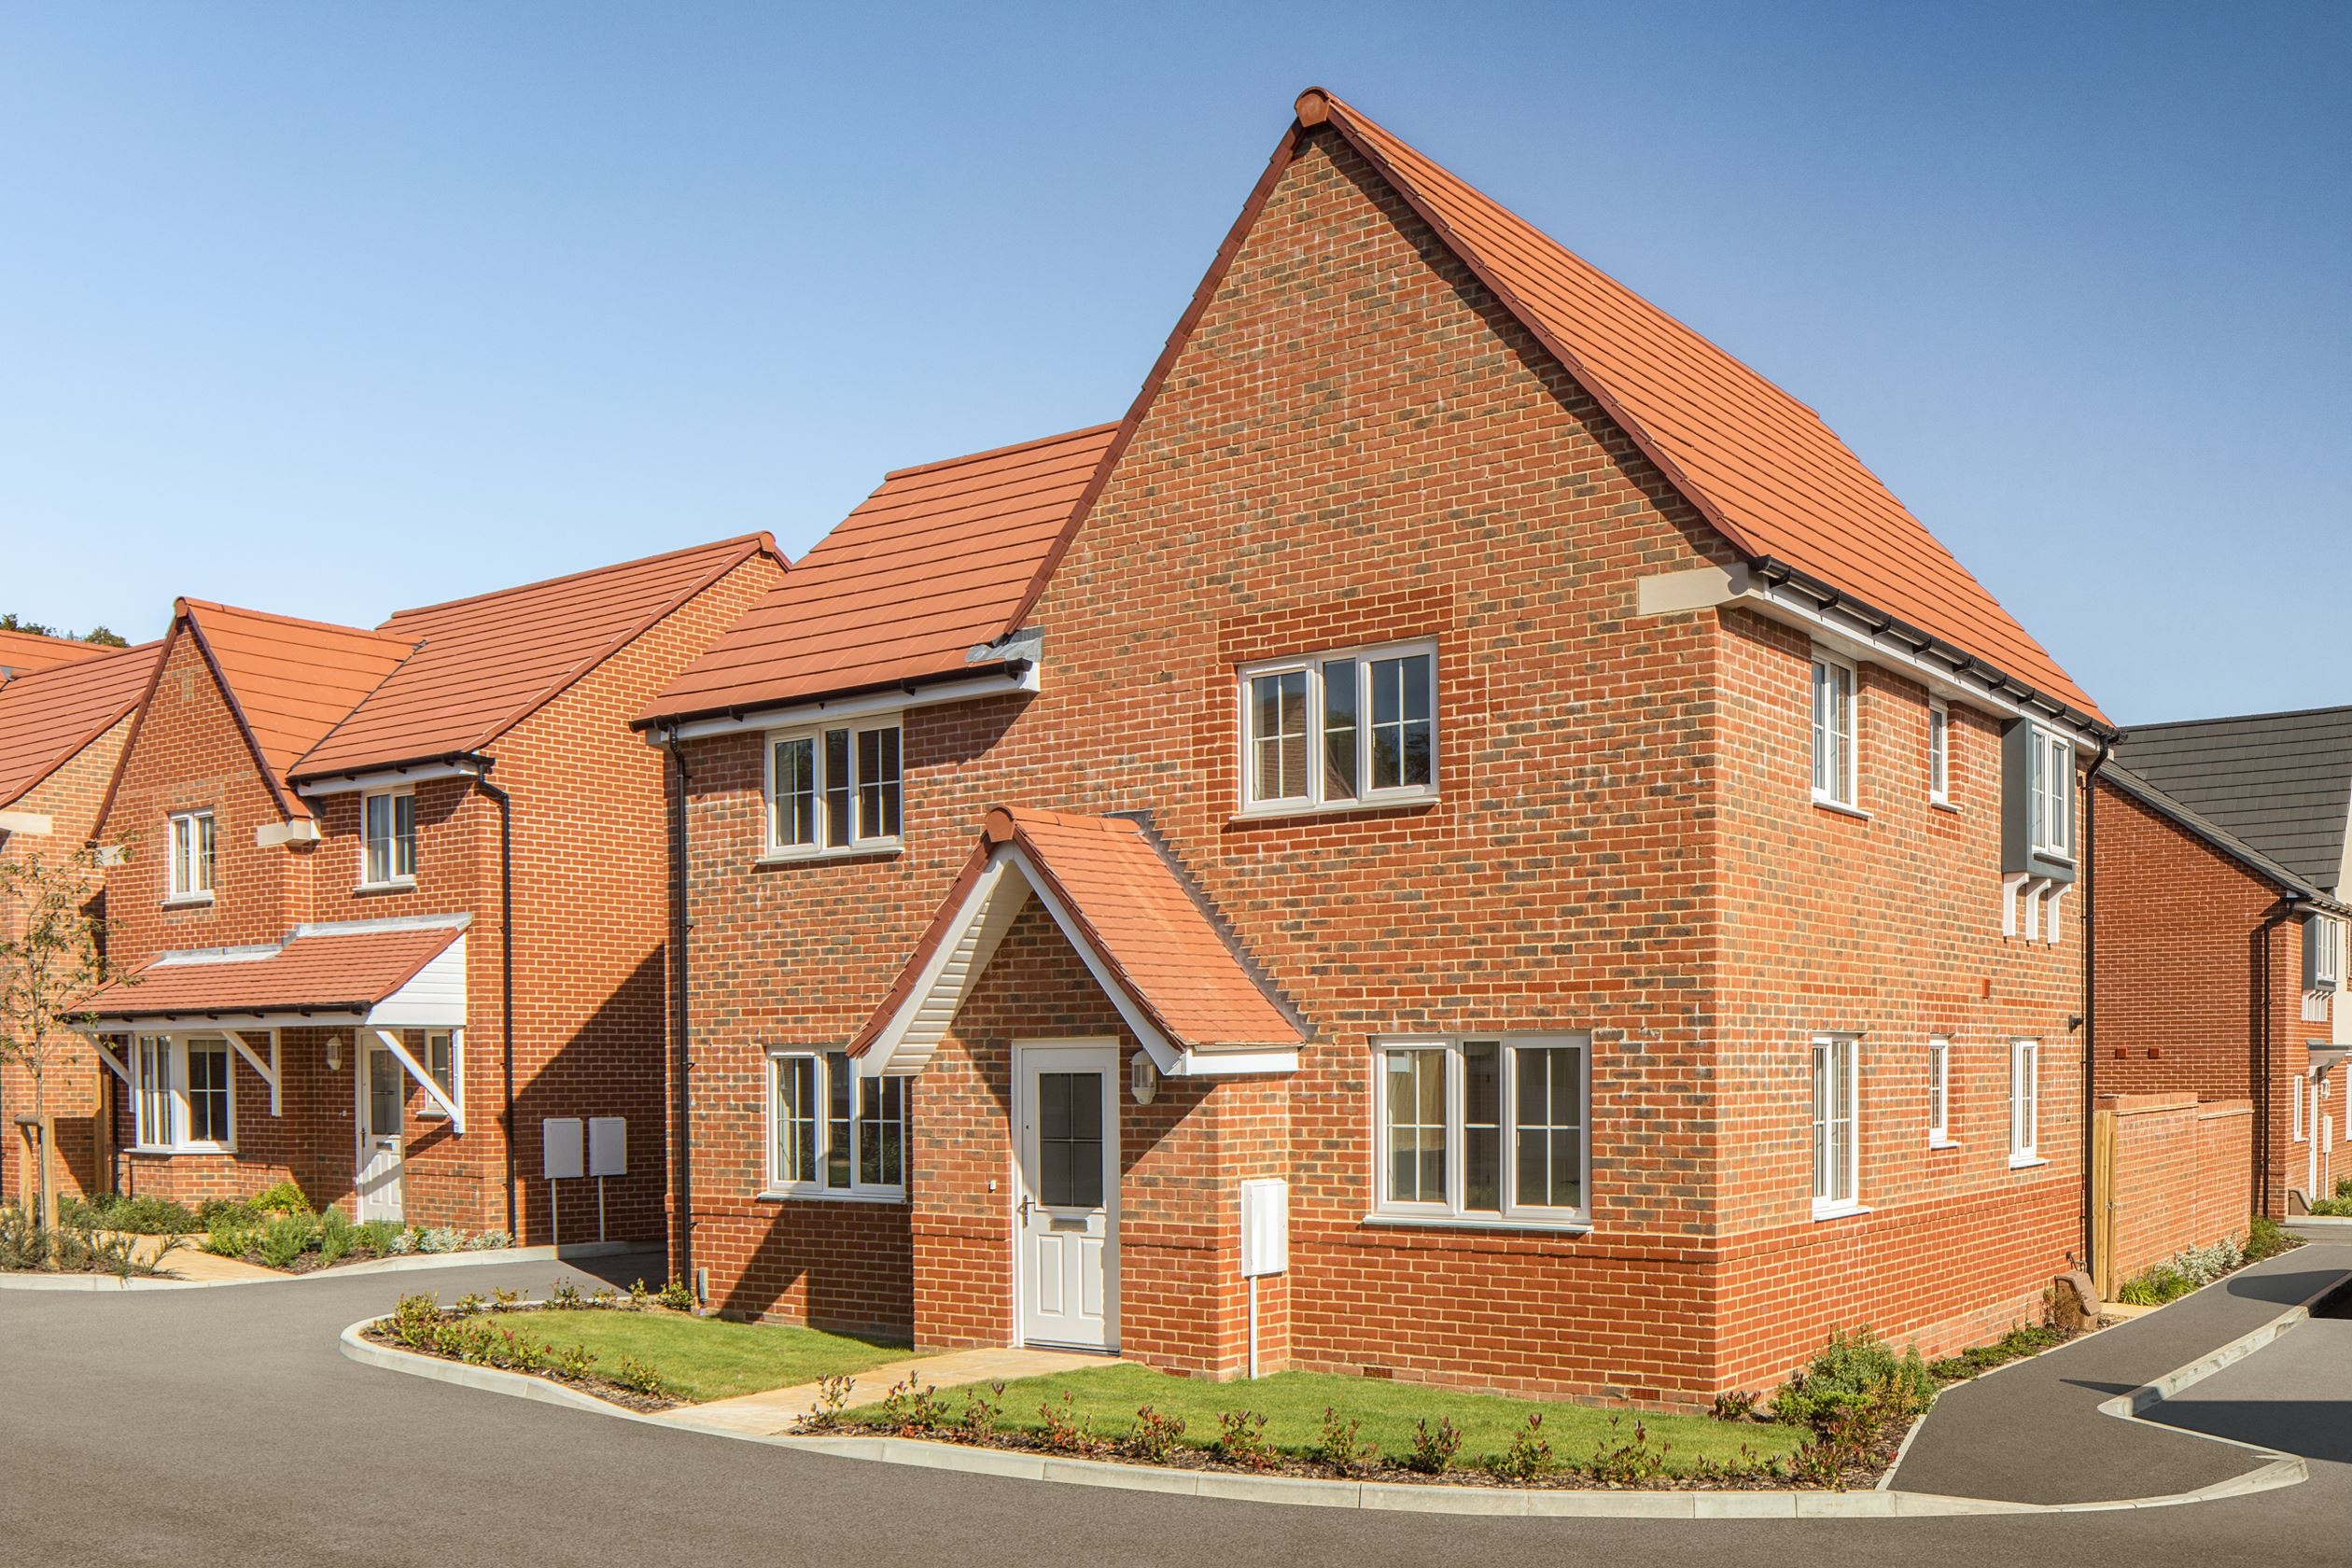 7795-07_BH_WarrenGrove_Storrington_Lincoln_4Bed